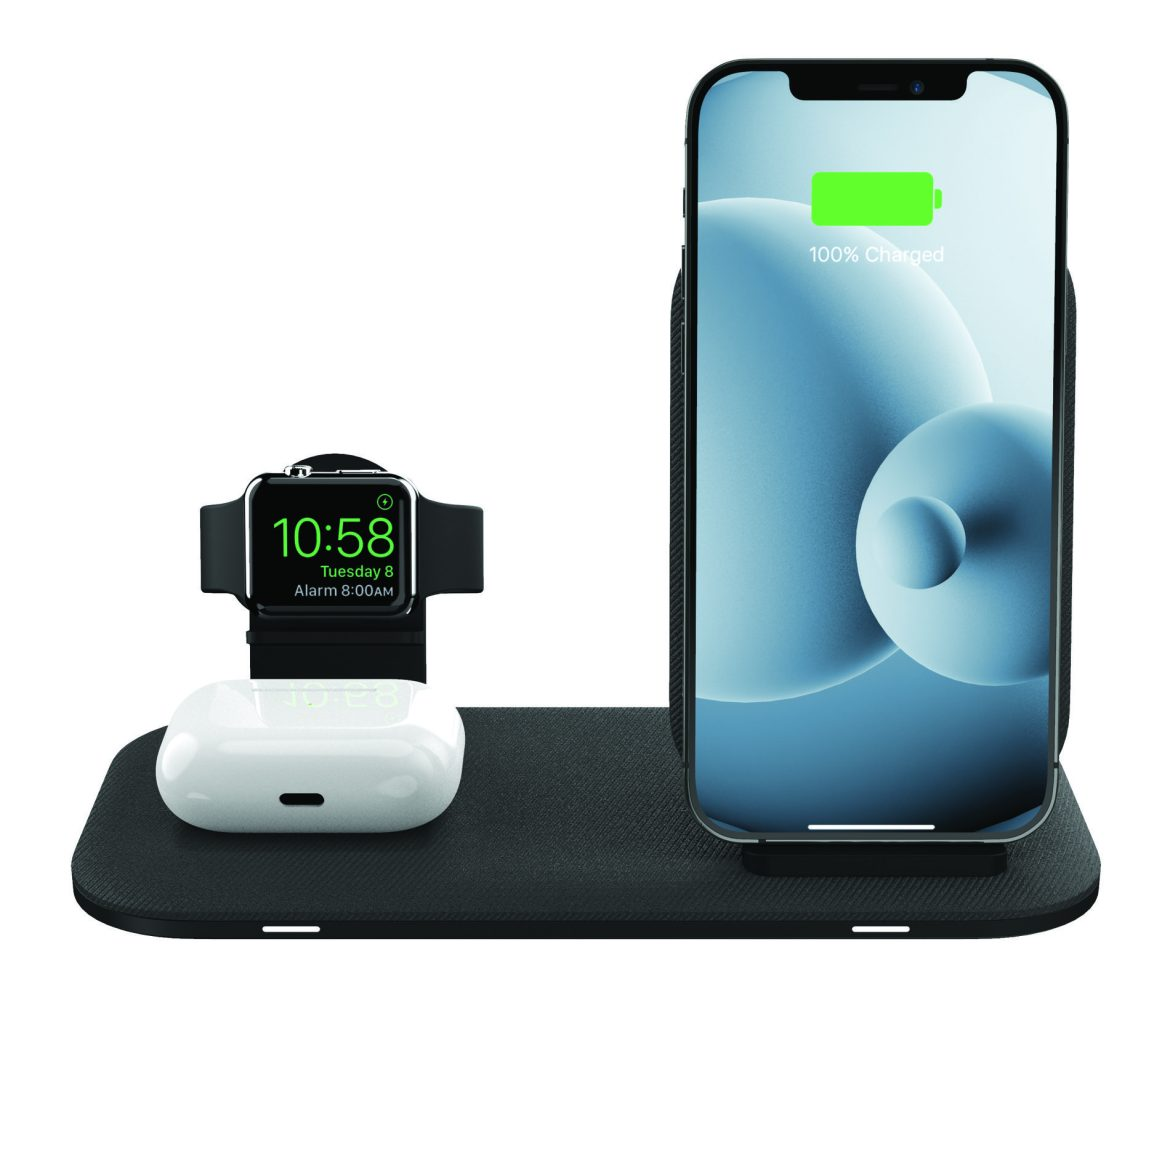 Introducing the mophie wireless charging stand+